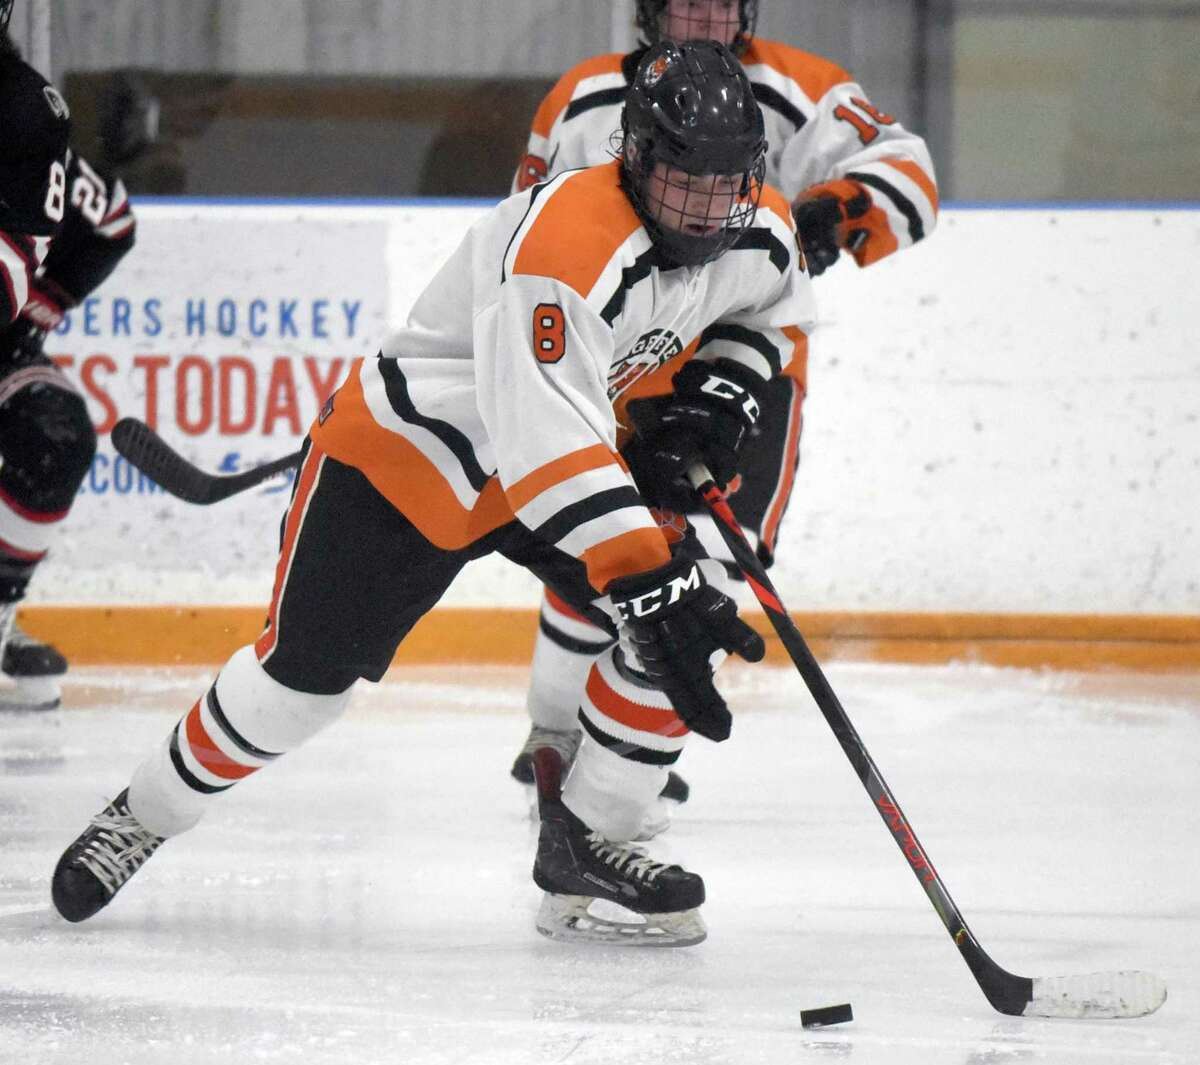 Ridgefield's Kees van Wees (8) skates with the puck during a boys ice hockey game between New Canaan and Ridgefield at the Winter Garden.